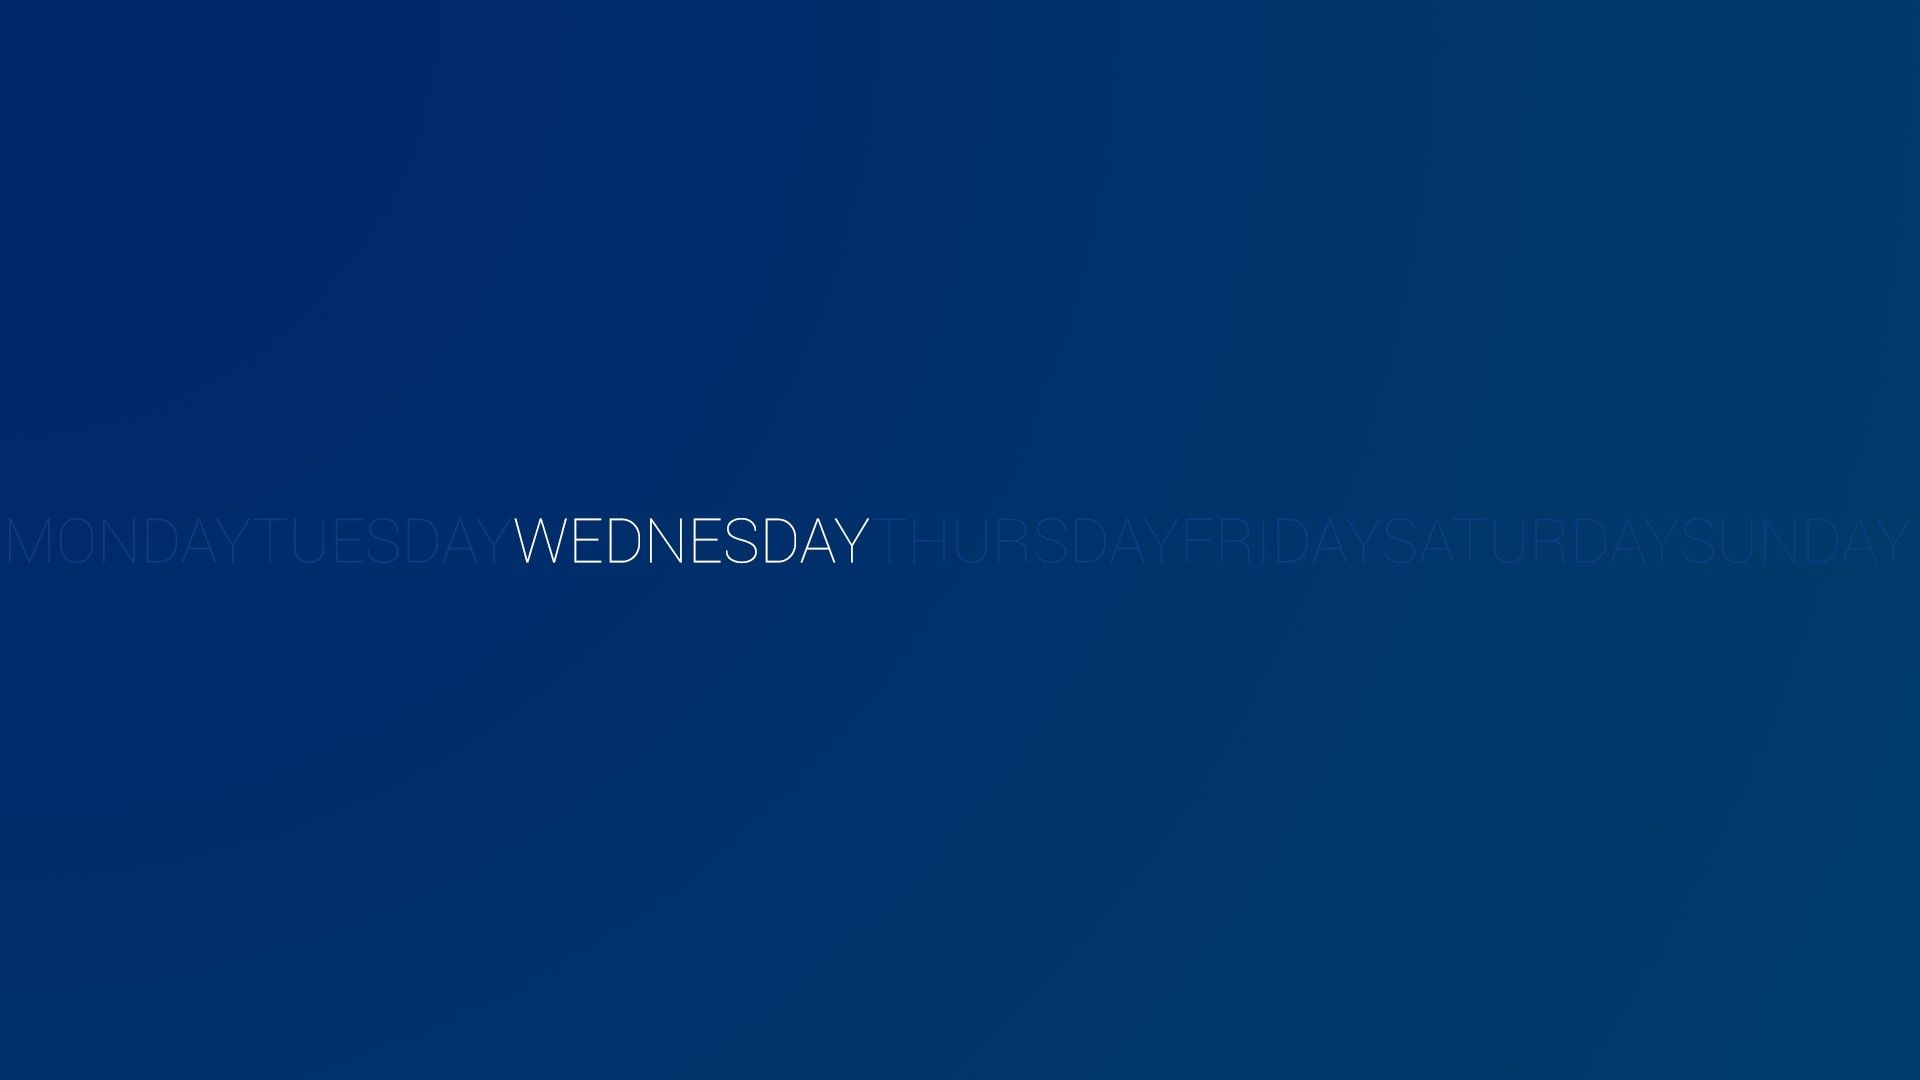 1920x1080 Wednesday, HD Typography, 4k Wallpapers, Images, Backgrounds ...